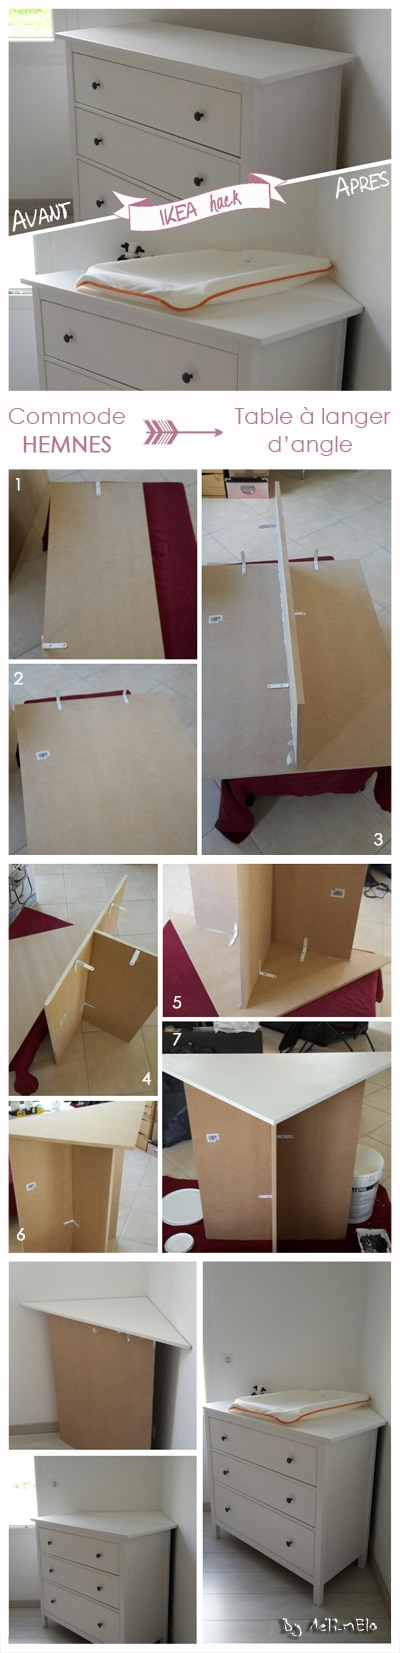 Ikea Hack Table à Langer Angle .